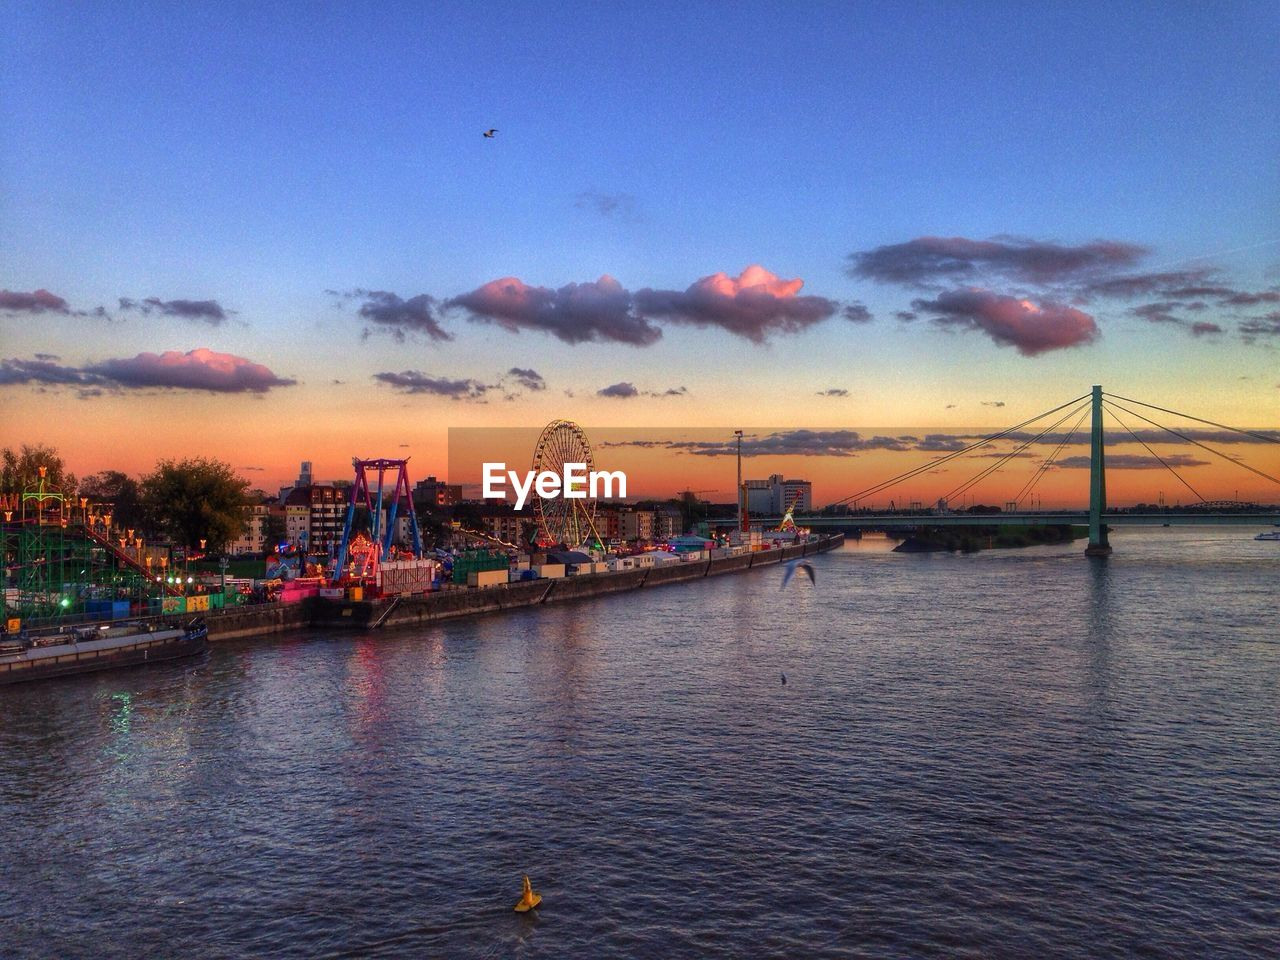 Cityscape with river and amusement park at sunset